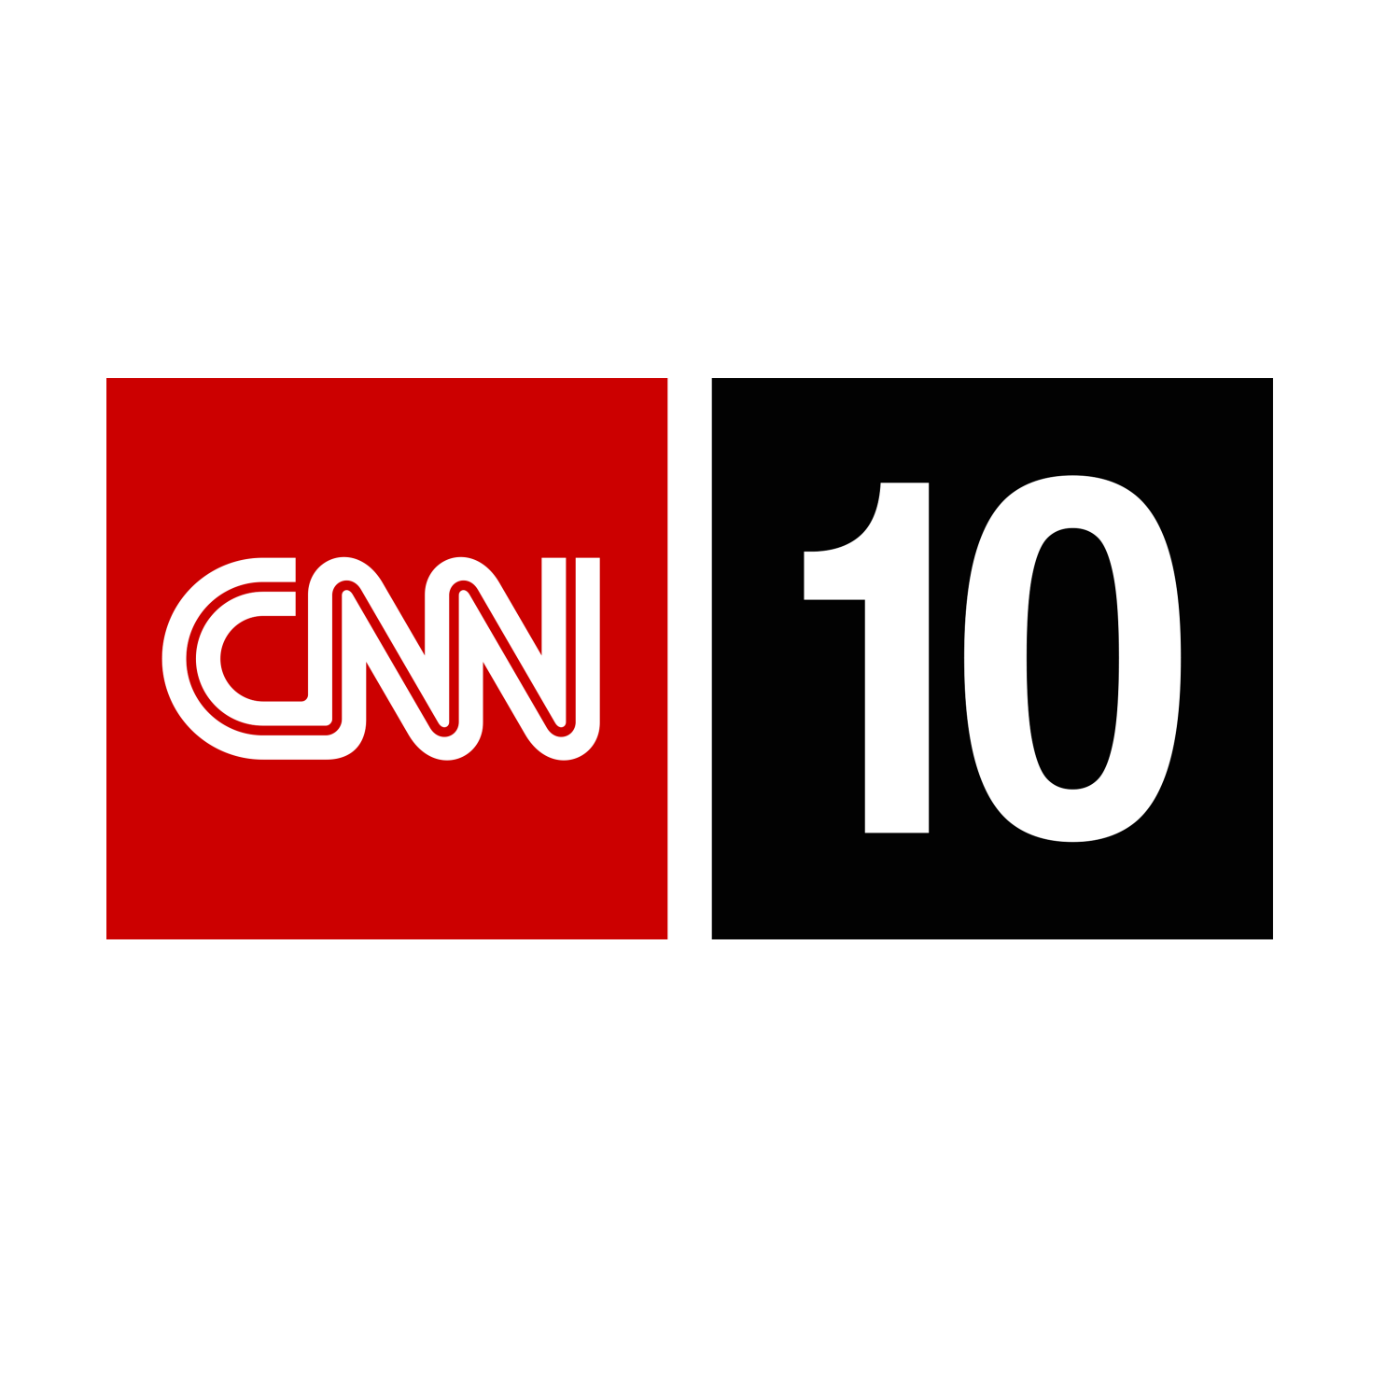 CNN Student News - May 22, 2013